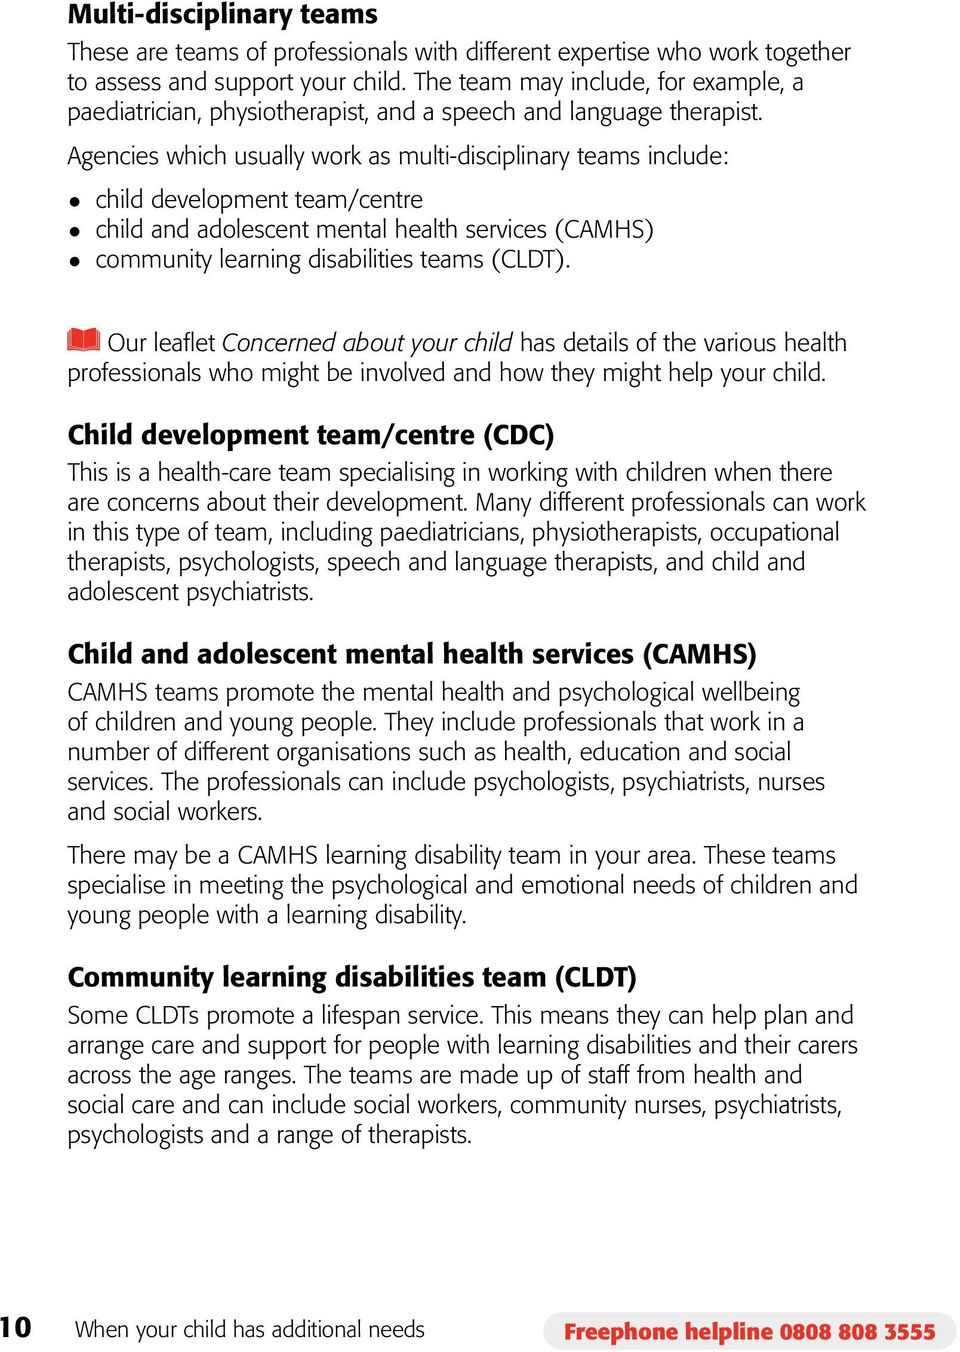 Agencies which usually work as multi-disciplinary teams include: child development team/centre child and adolescent mental health services (CAMHS) community learning disabilities teams (CLDT).